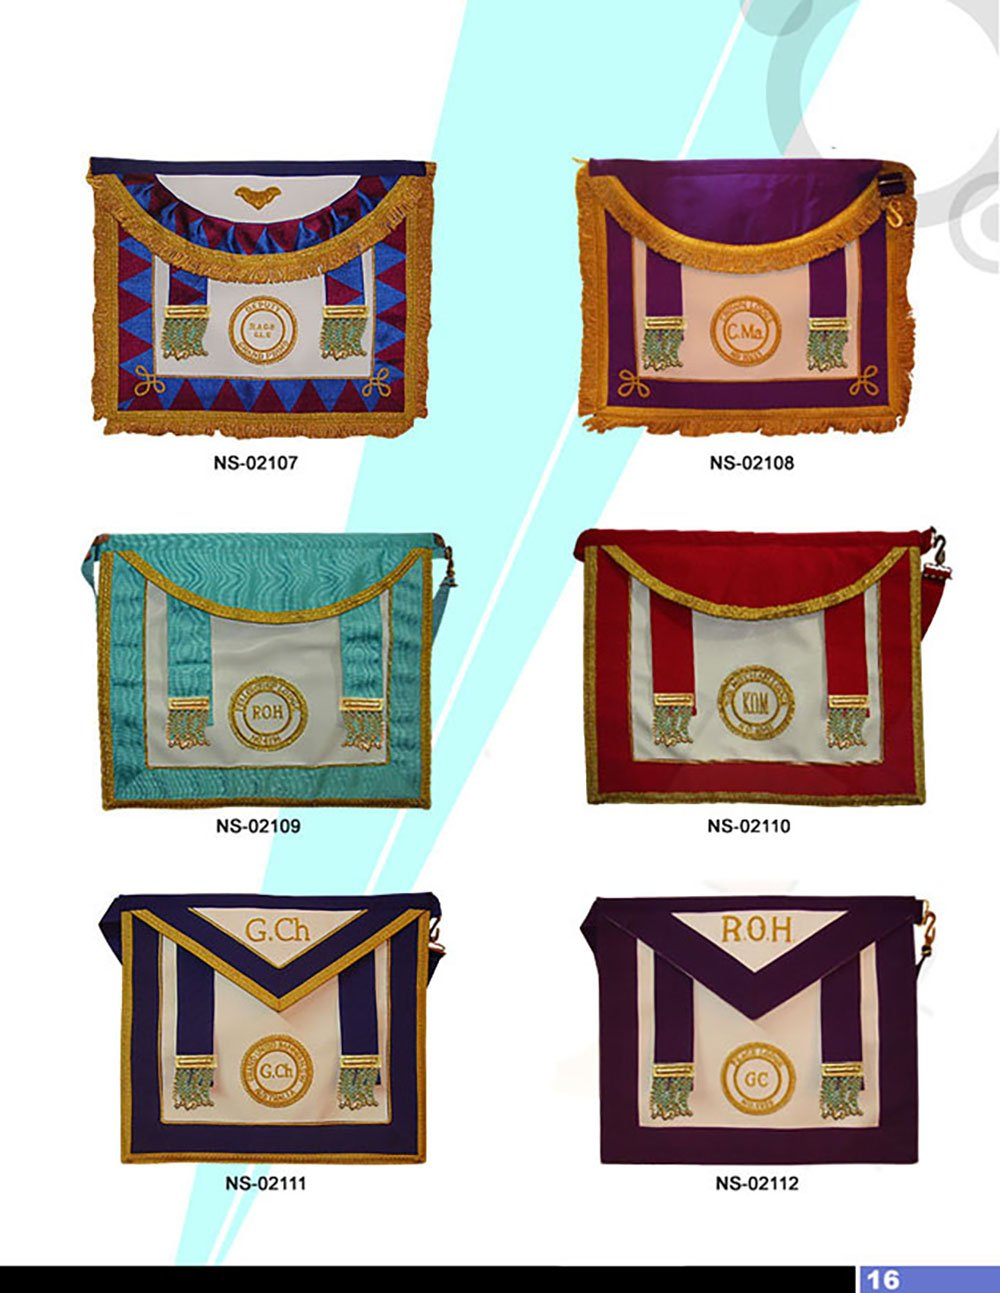 Royal Antediluvian Order of Buffaloes RAOB - Aprons - Bricks Masons